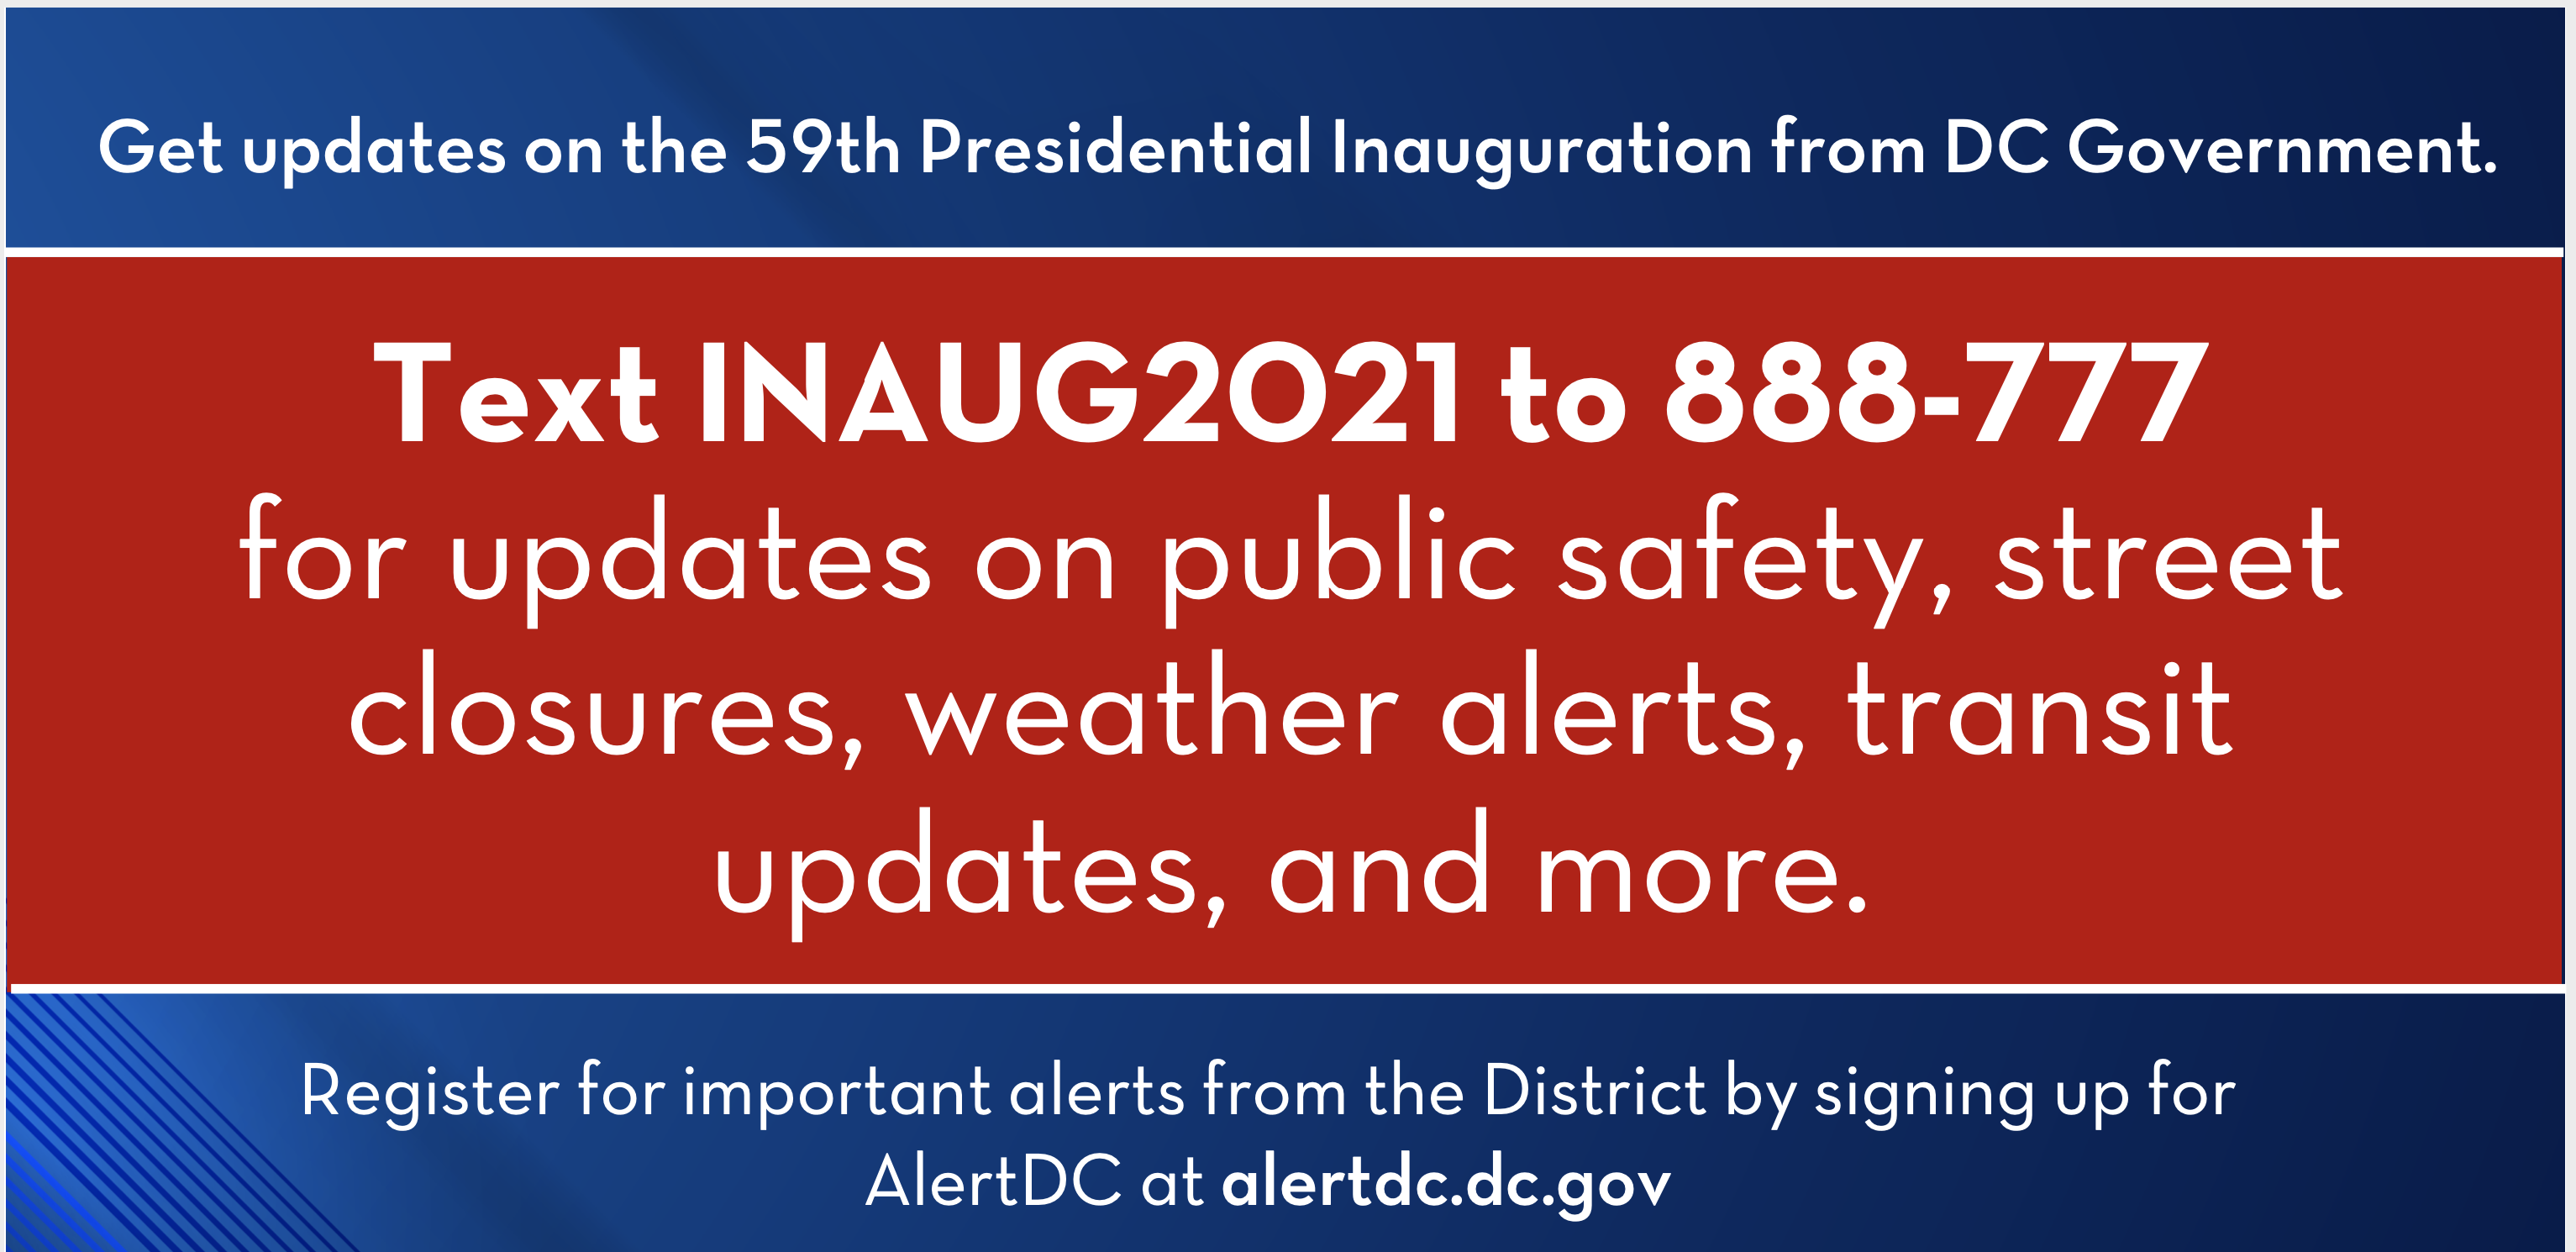 Text INAUG2021 to 888-777 for text alerts